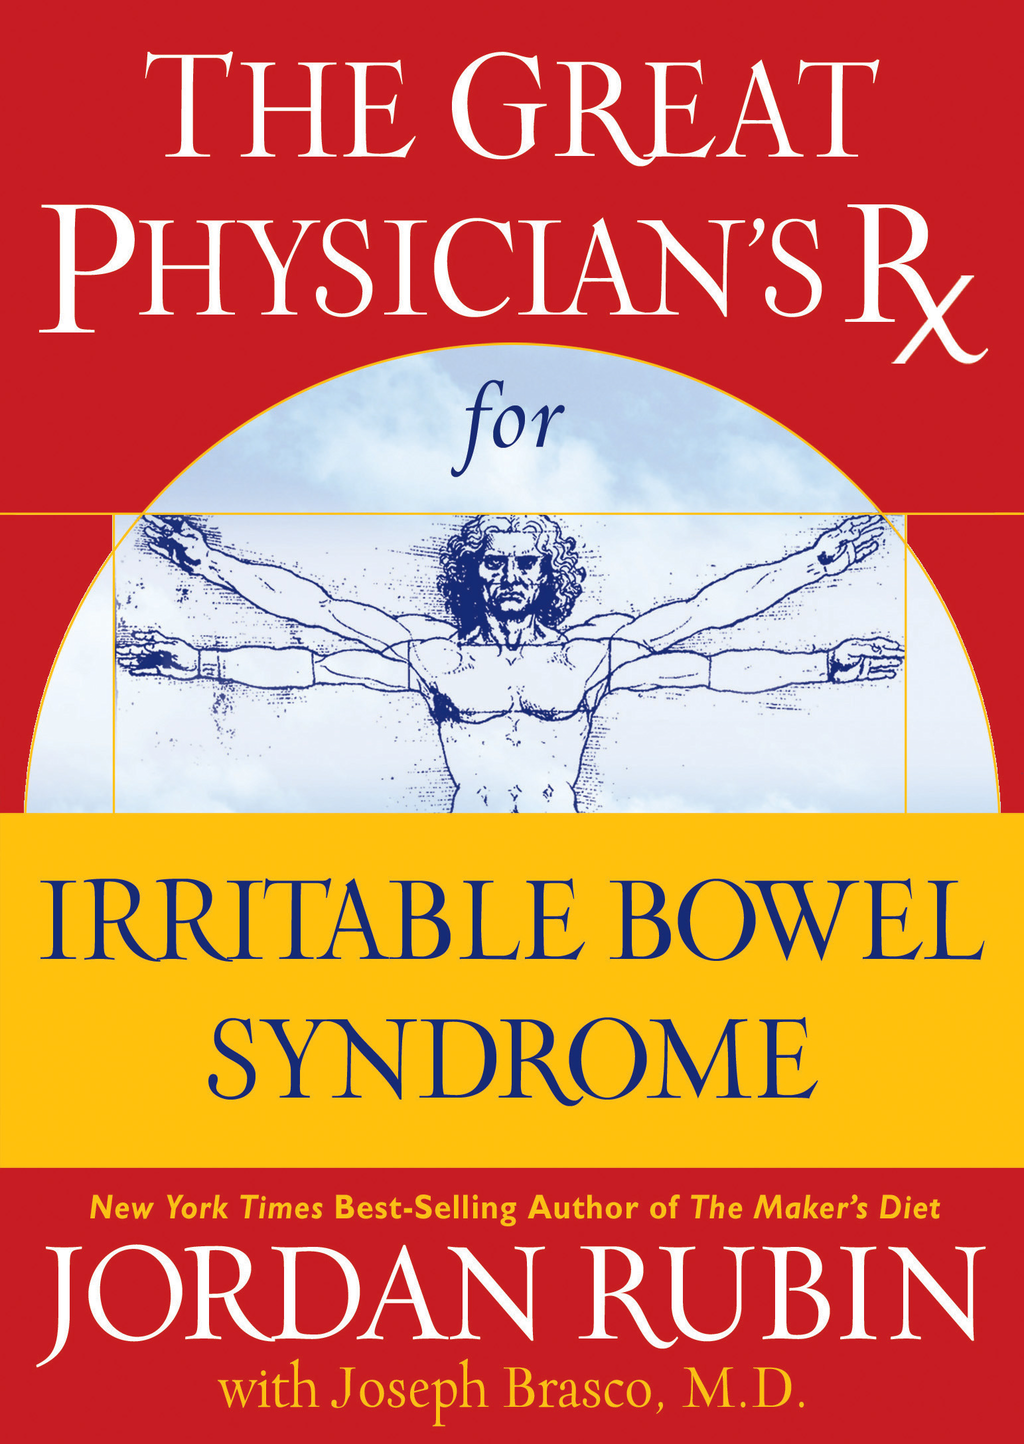 The Great Physician's Rx for Irritable Bowel Syndrome By: Jordan Rubin